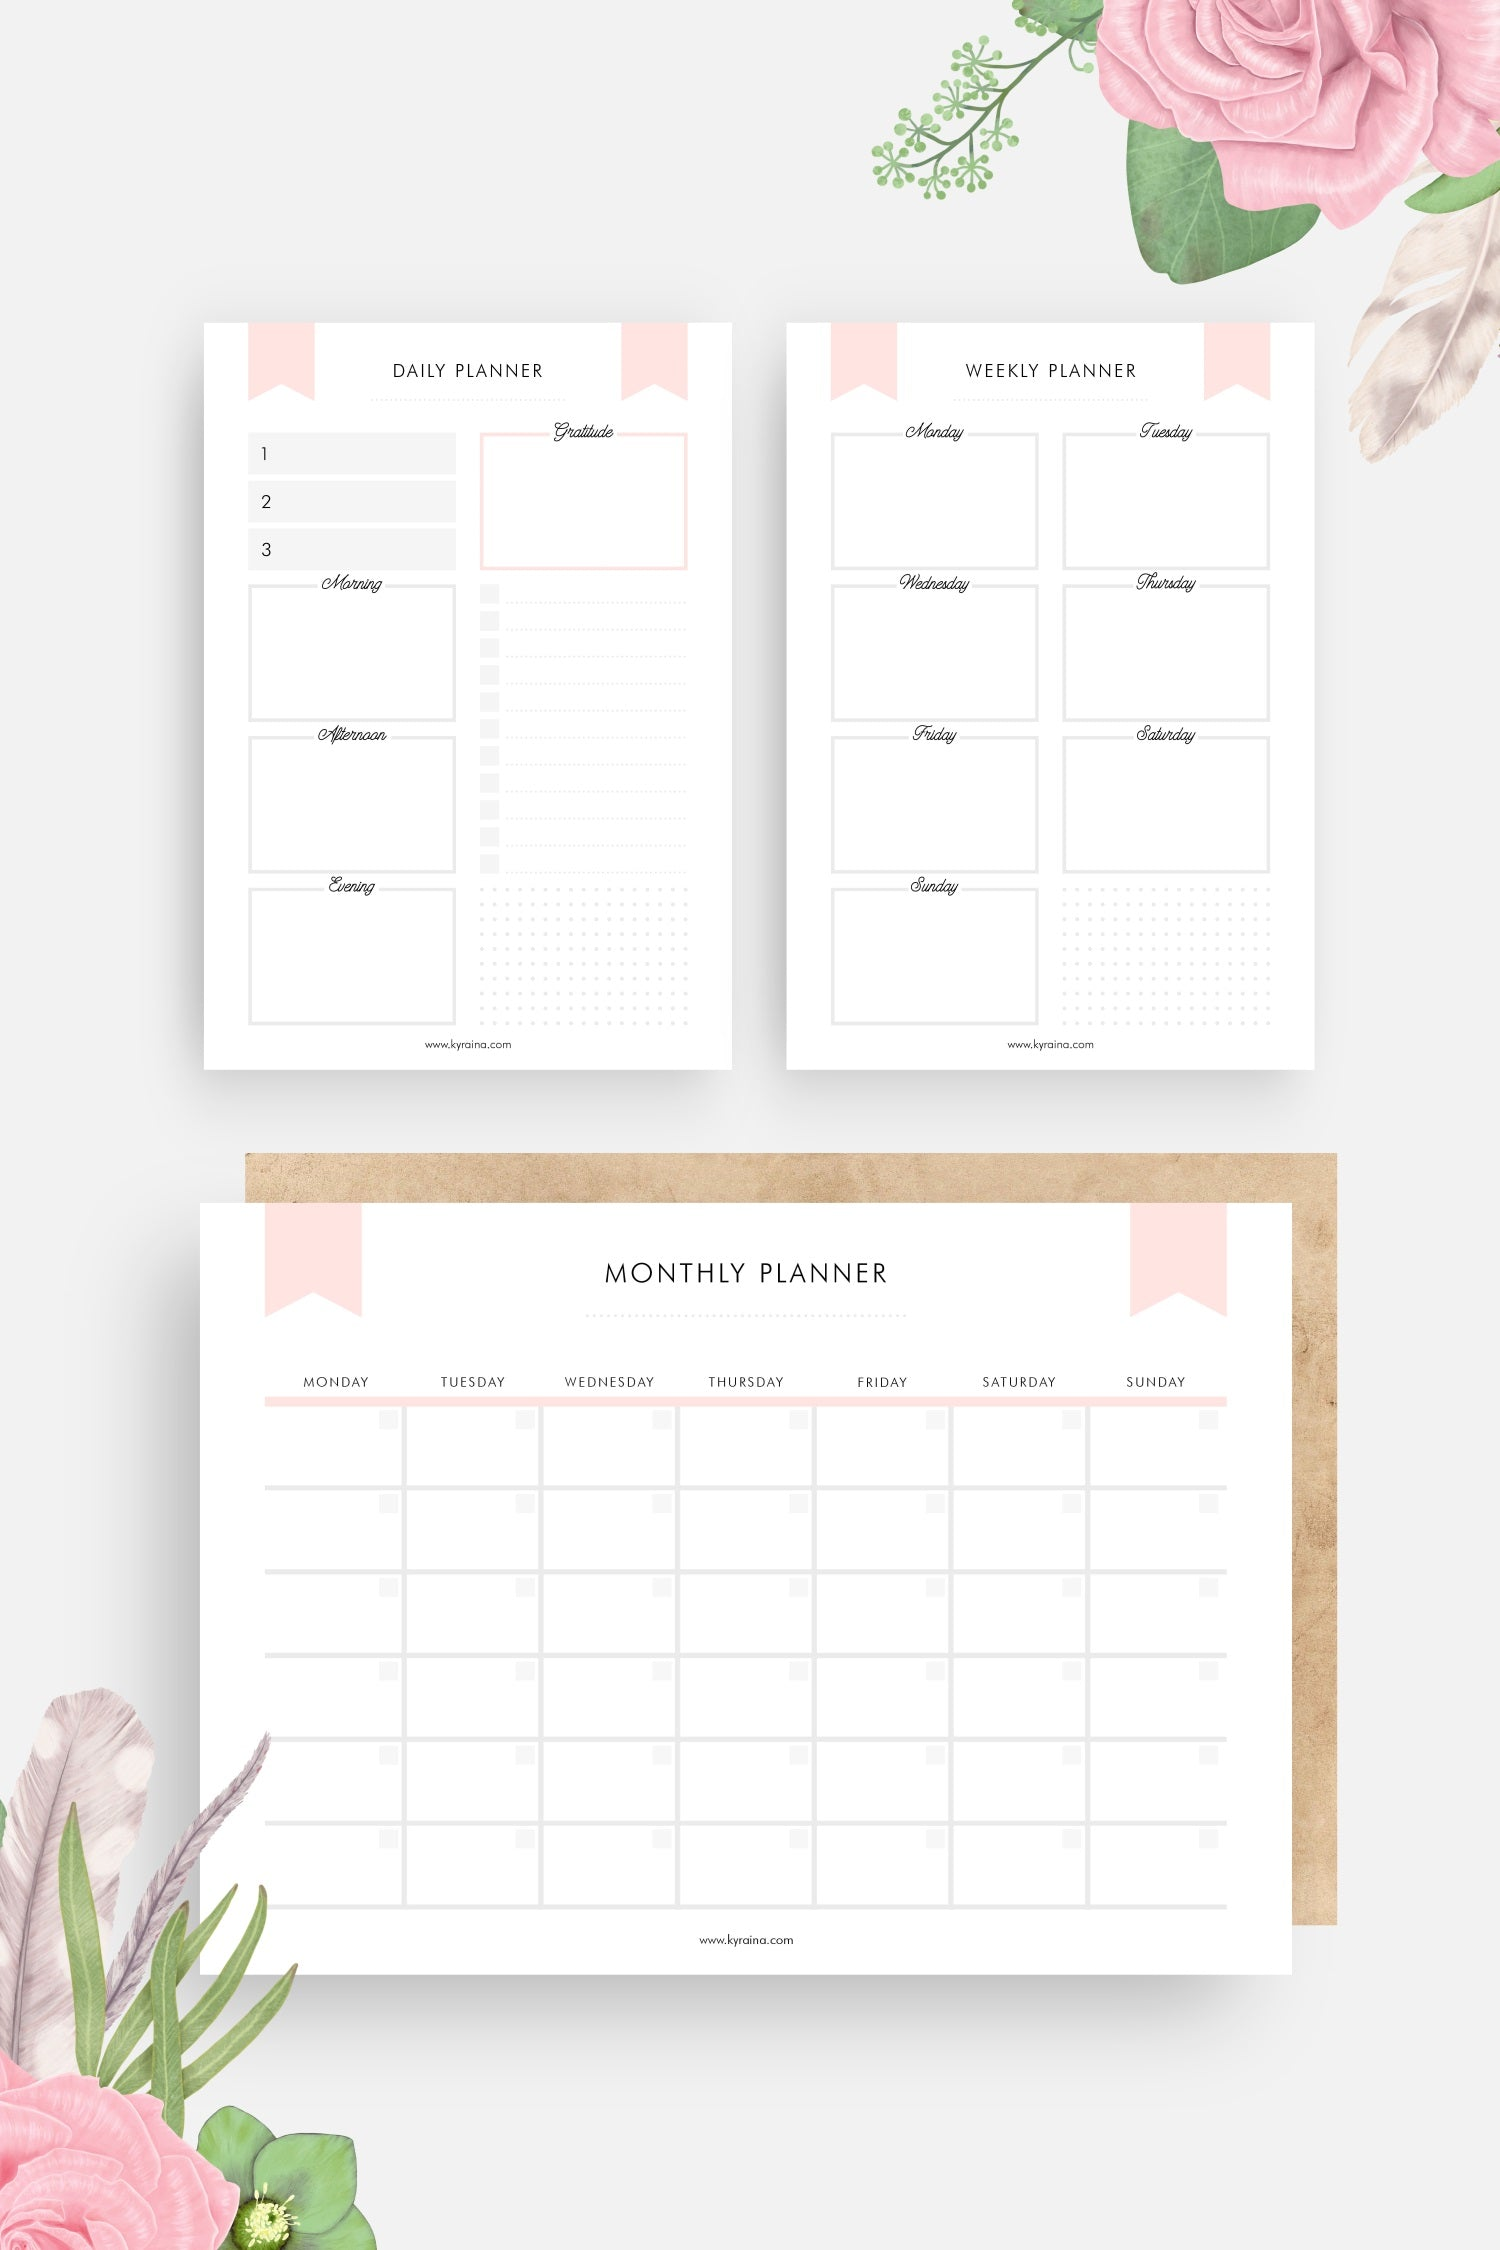 free planner printable template, digital download, daily planner, weekly planner, and monthly calendar planner printables PDF file format A4 size to download and print